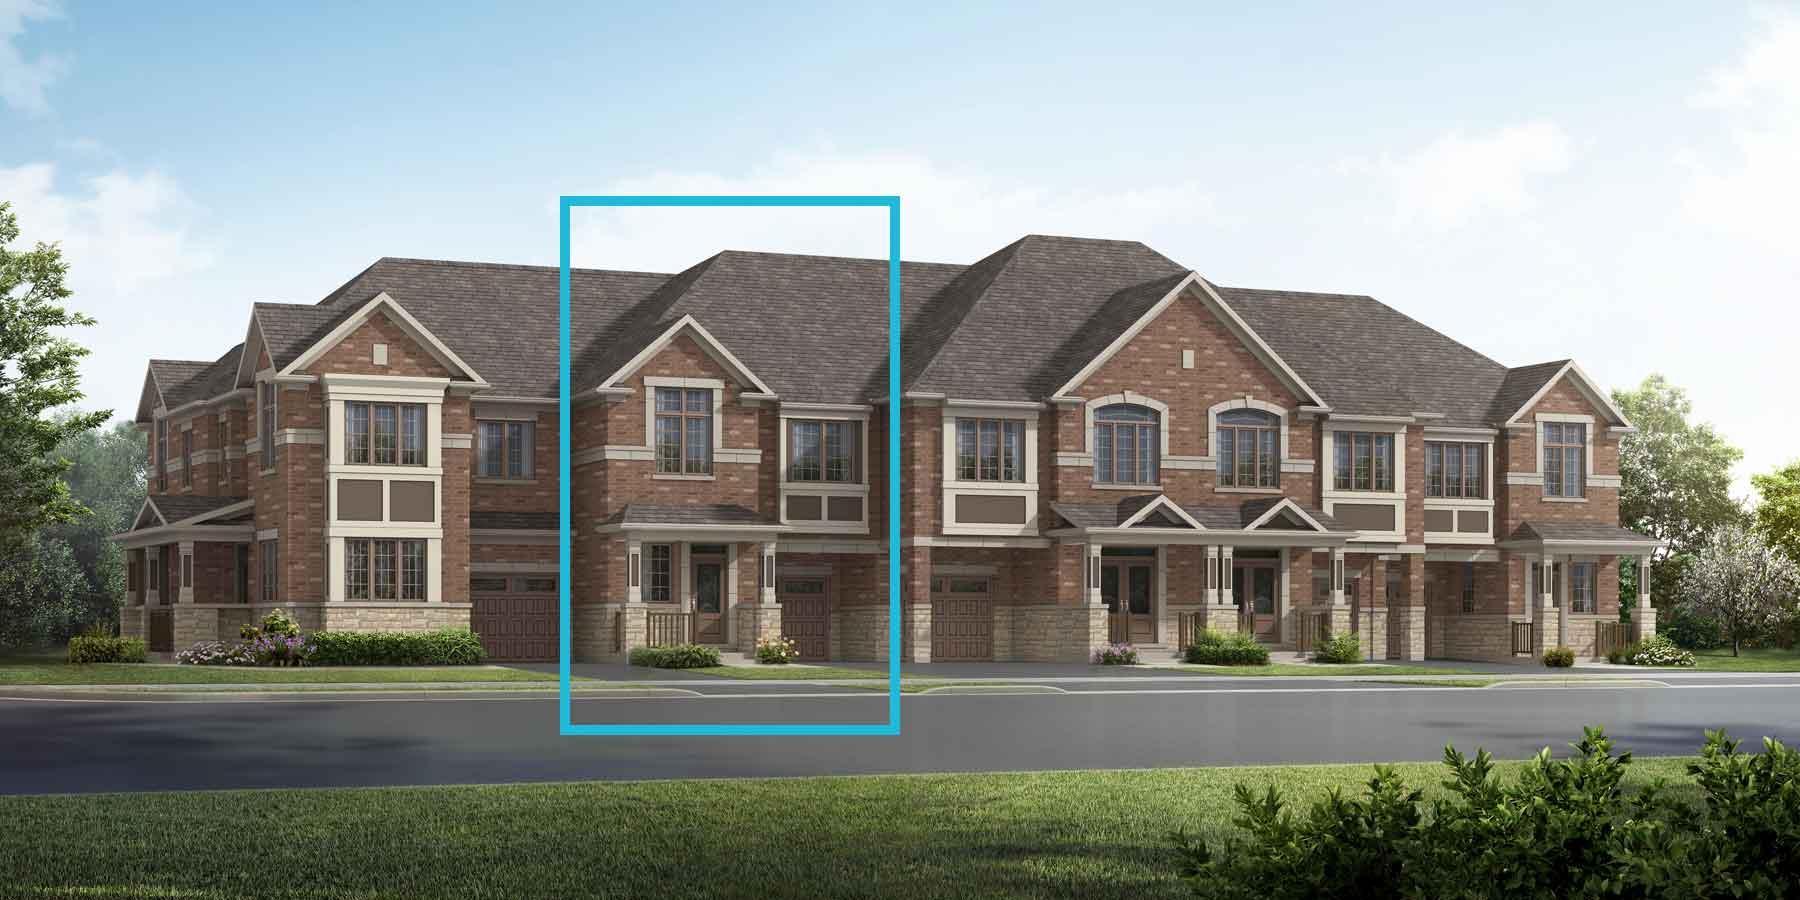 Mint Plan traditional_springwater_mint at Springwater in Markham Ontario by Mattamy Homes